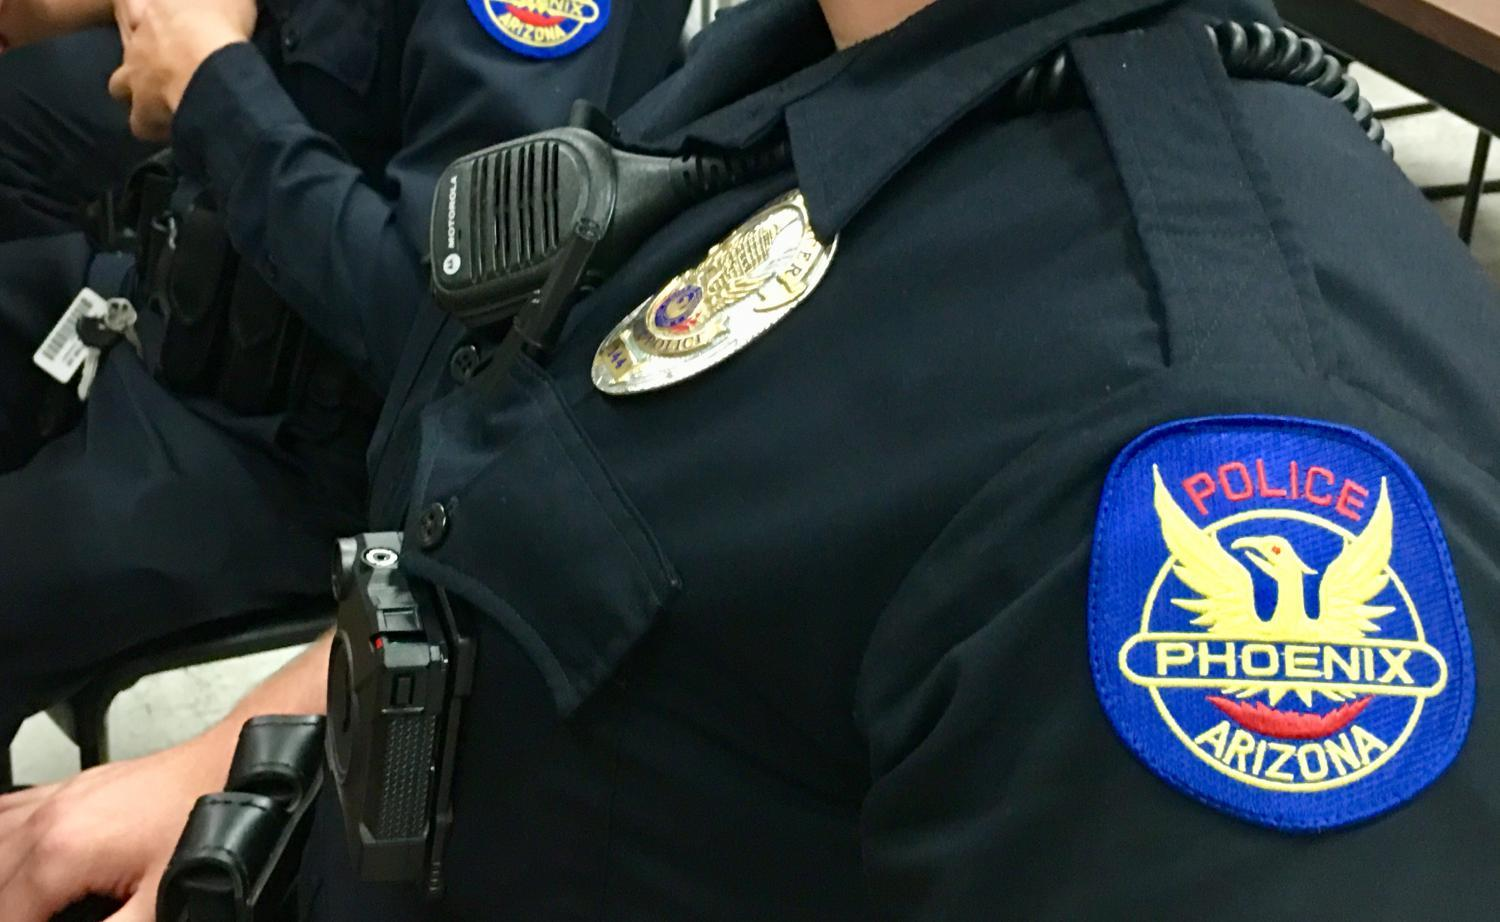 body camera and badge on officer